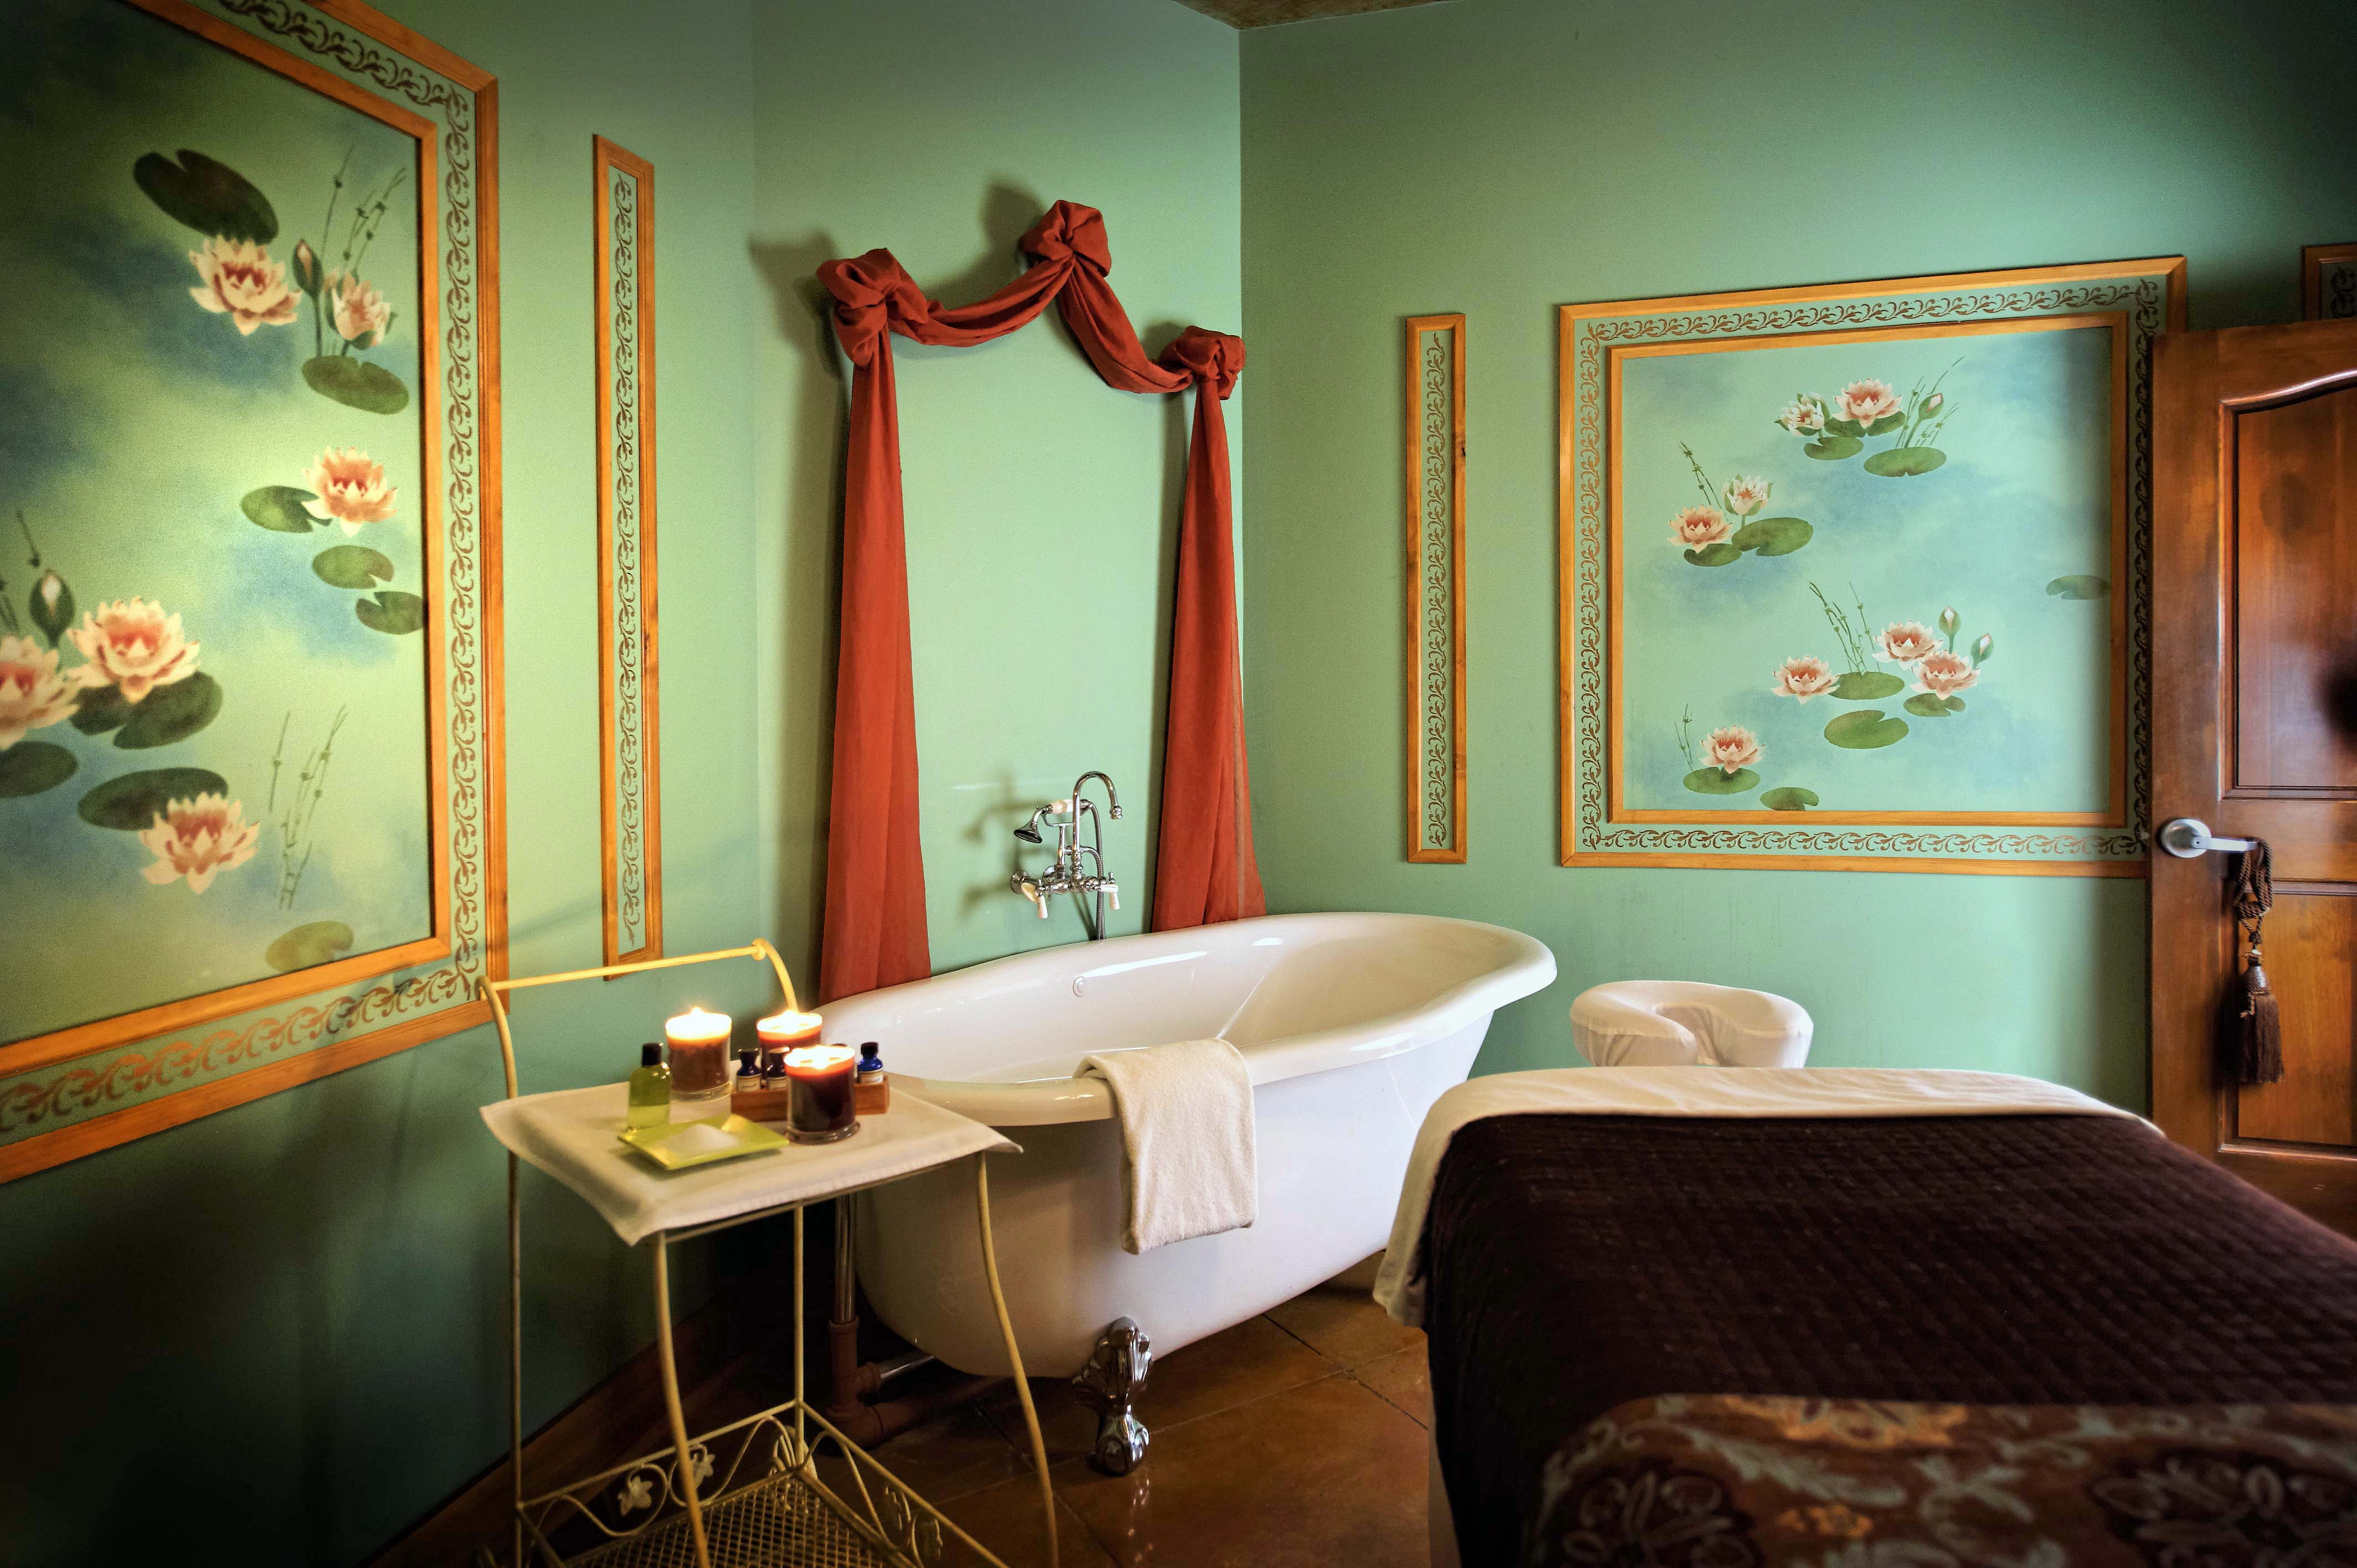 The spa at Mirbeau is a cozy getaway for couples, and less expensive than a trip to France.